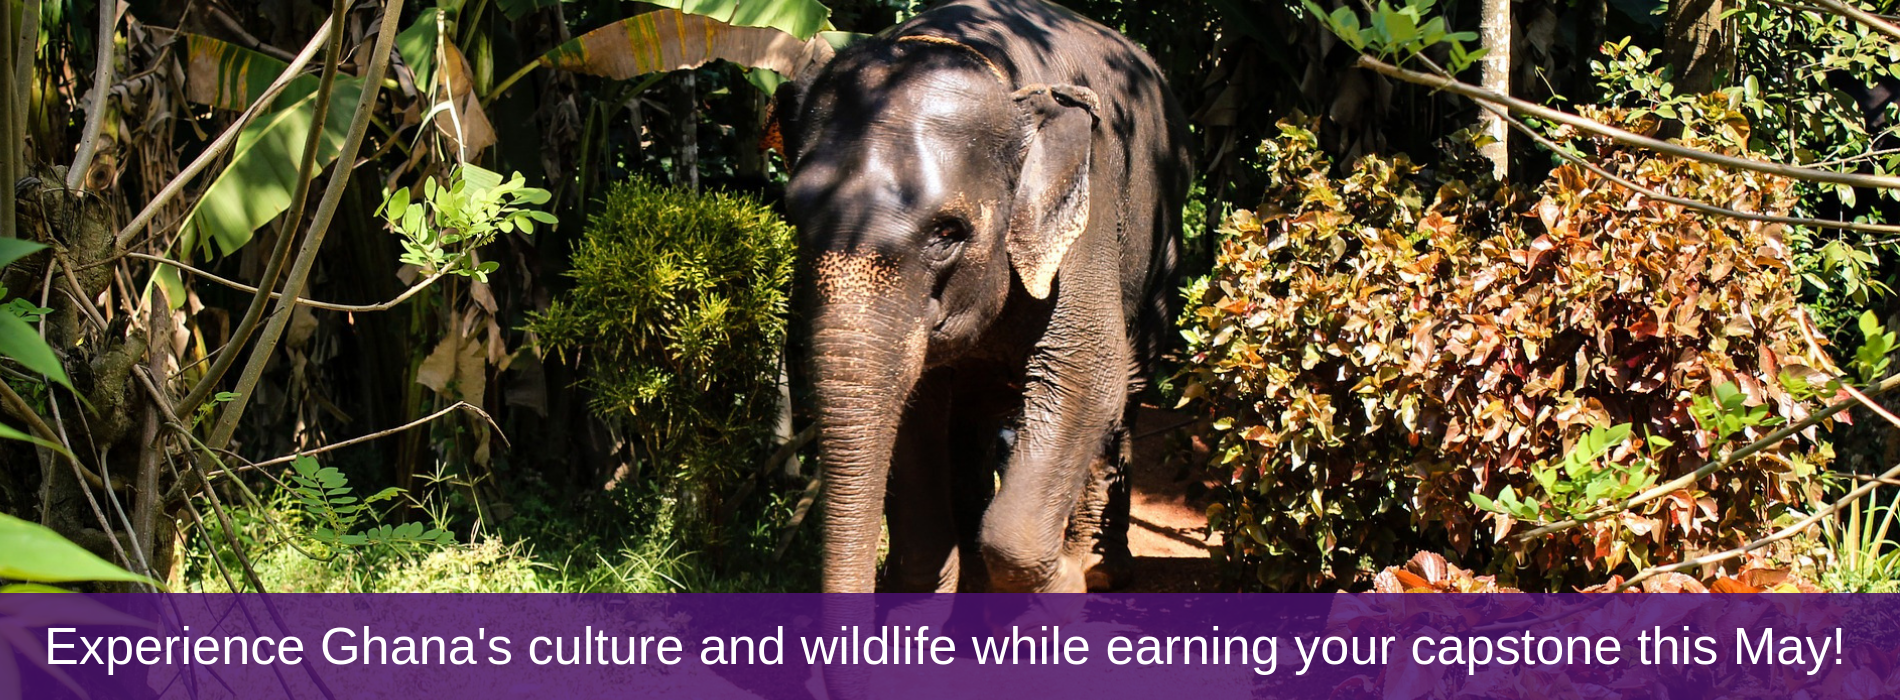 Experience Ghana's culture and wildlife while earning your capstone this May!